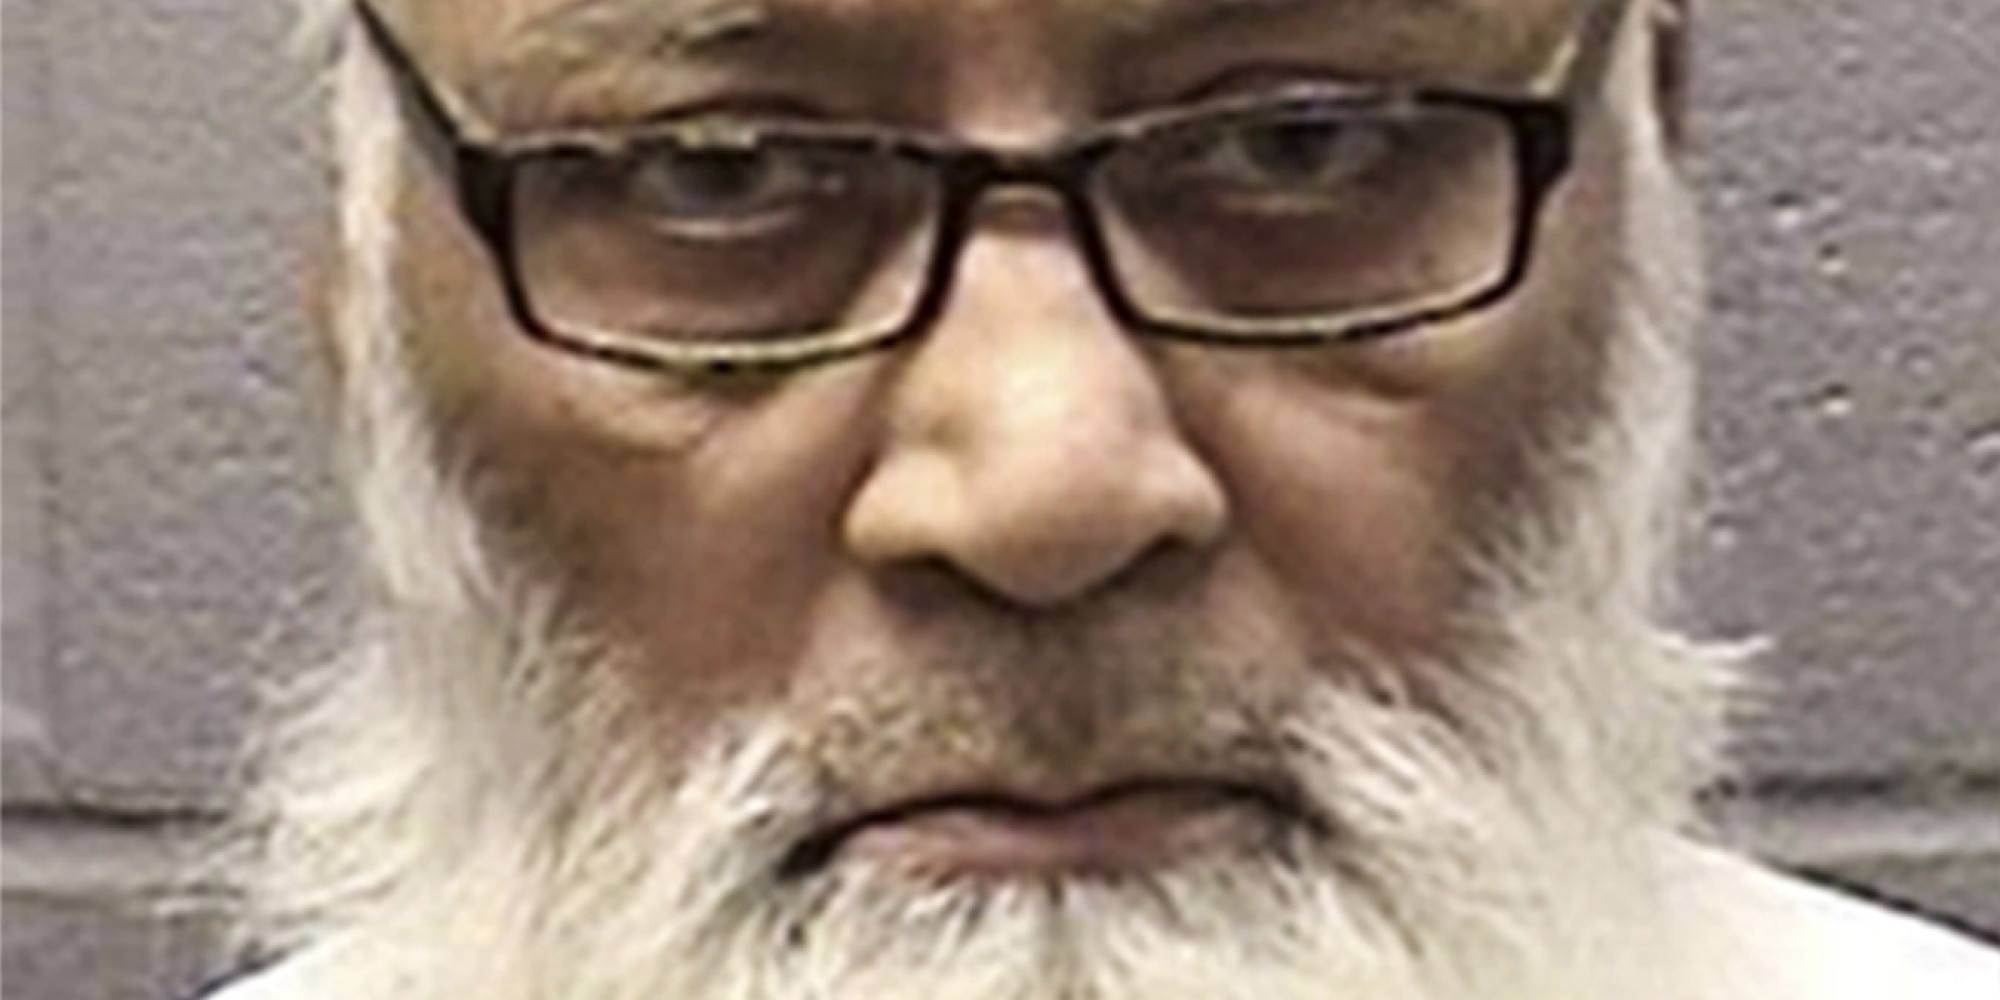 Sexual Abuse Allegations Against Chicago-Area Imam Mohammad Abdullah Saleem ... - o-MOHAMMAD-ABDULLAH-SALEEM-facebook